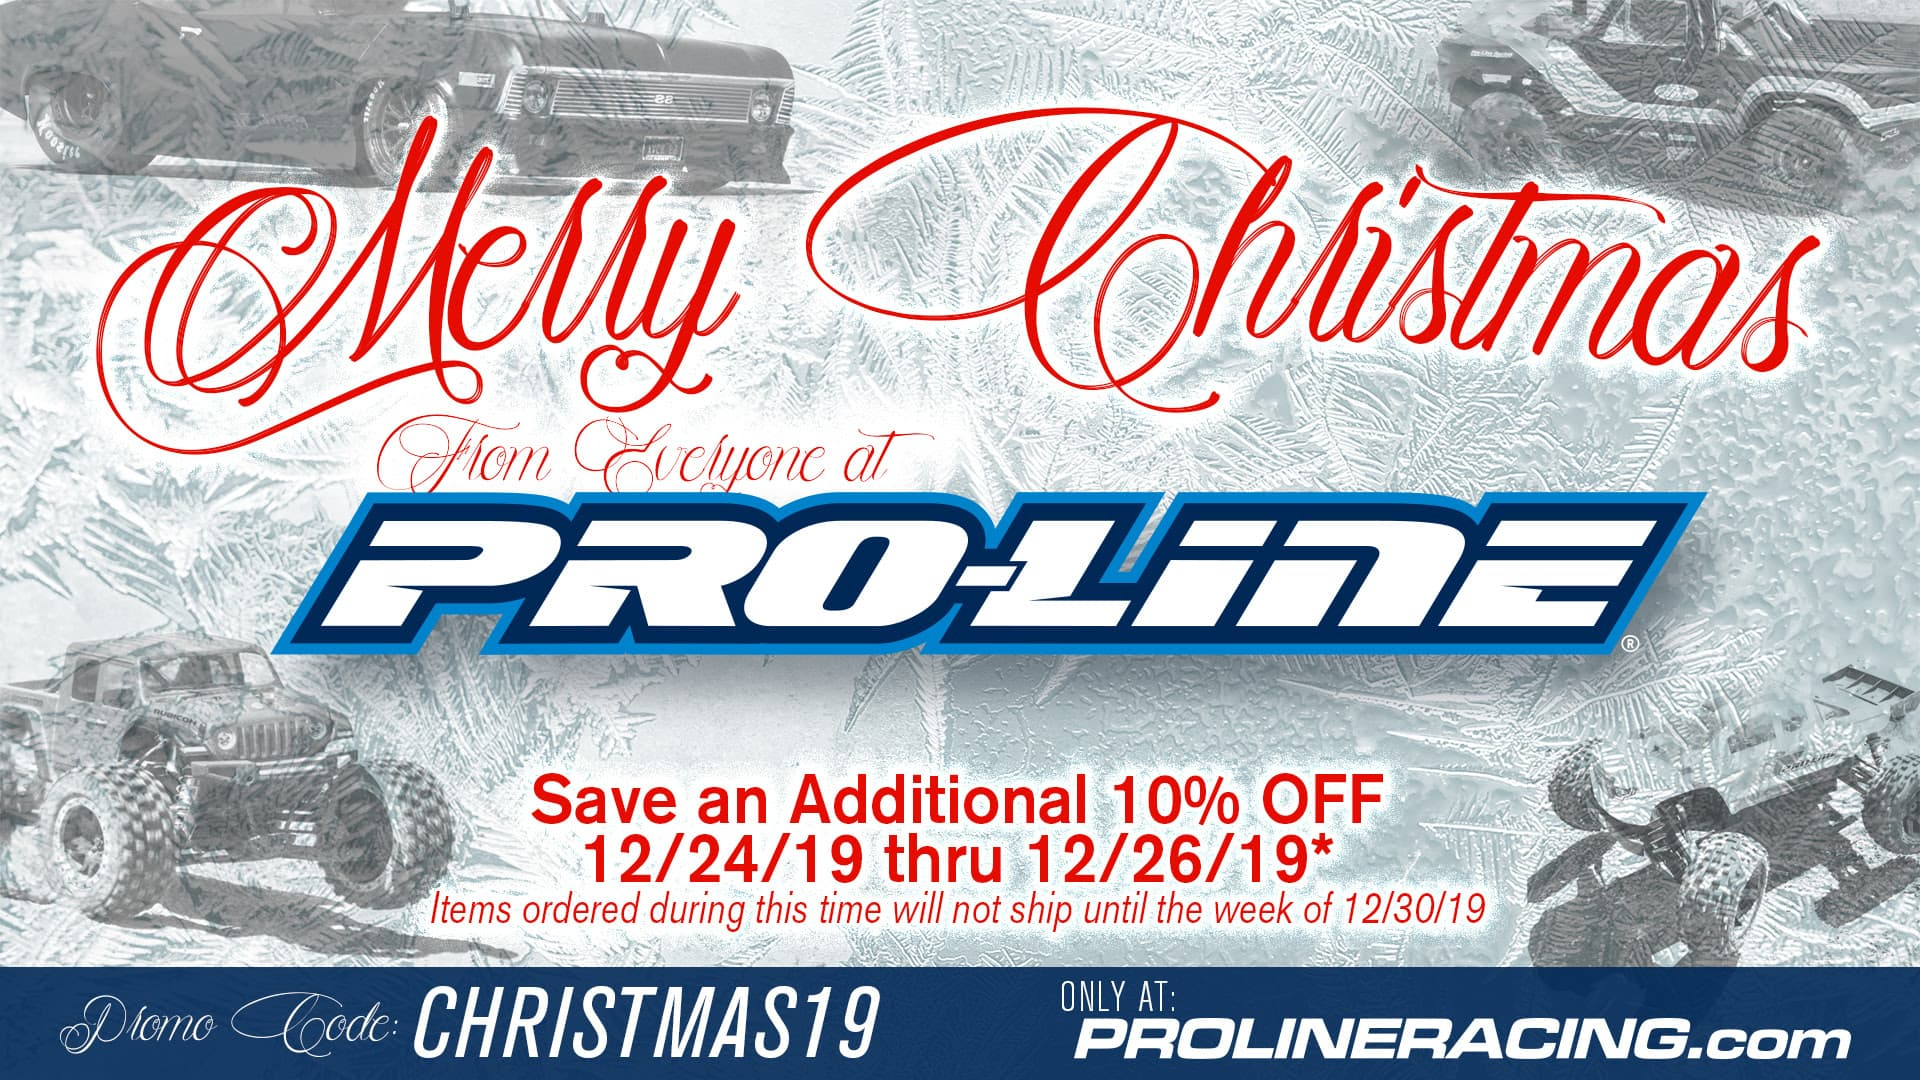 Enjoy Christmas Savings of 10% Off from Pro-Line